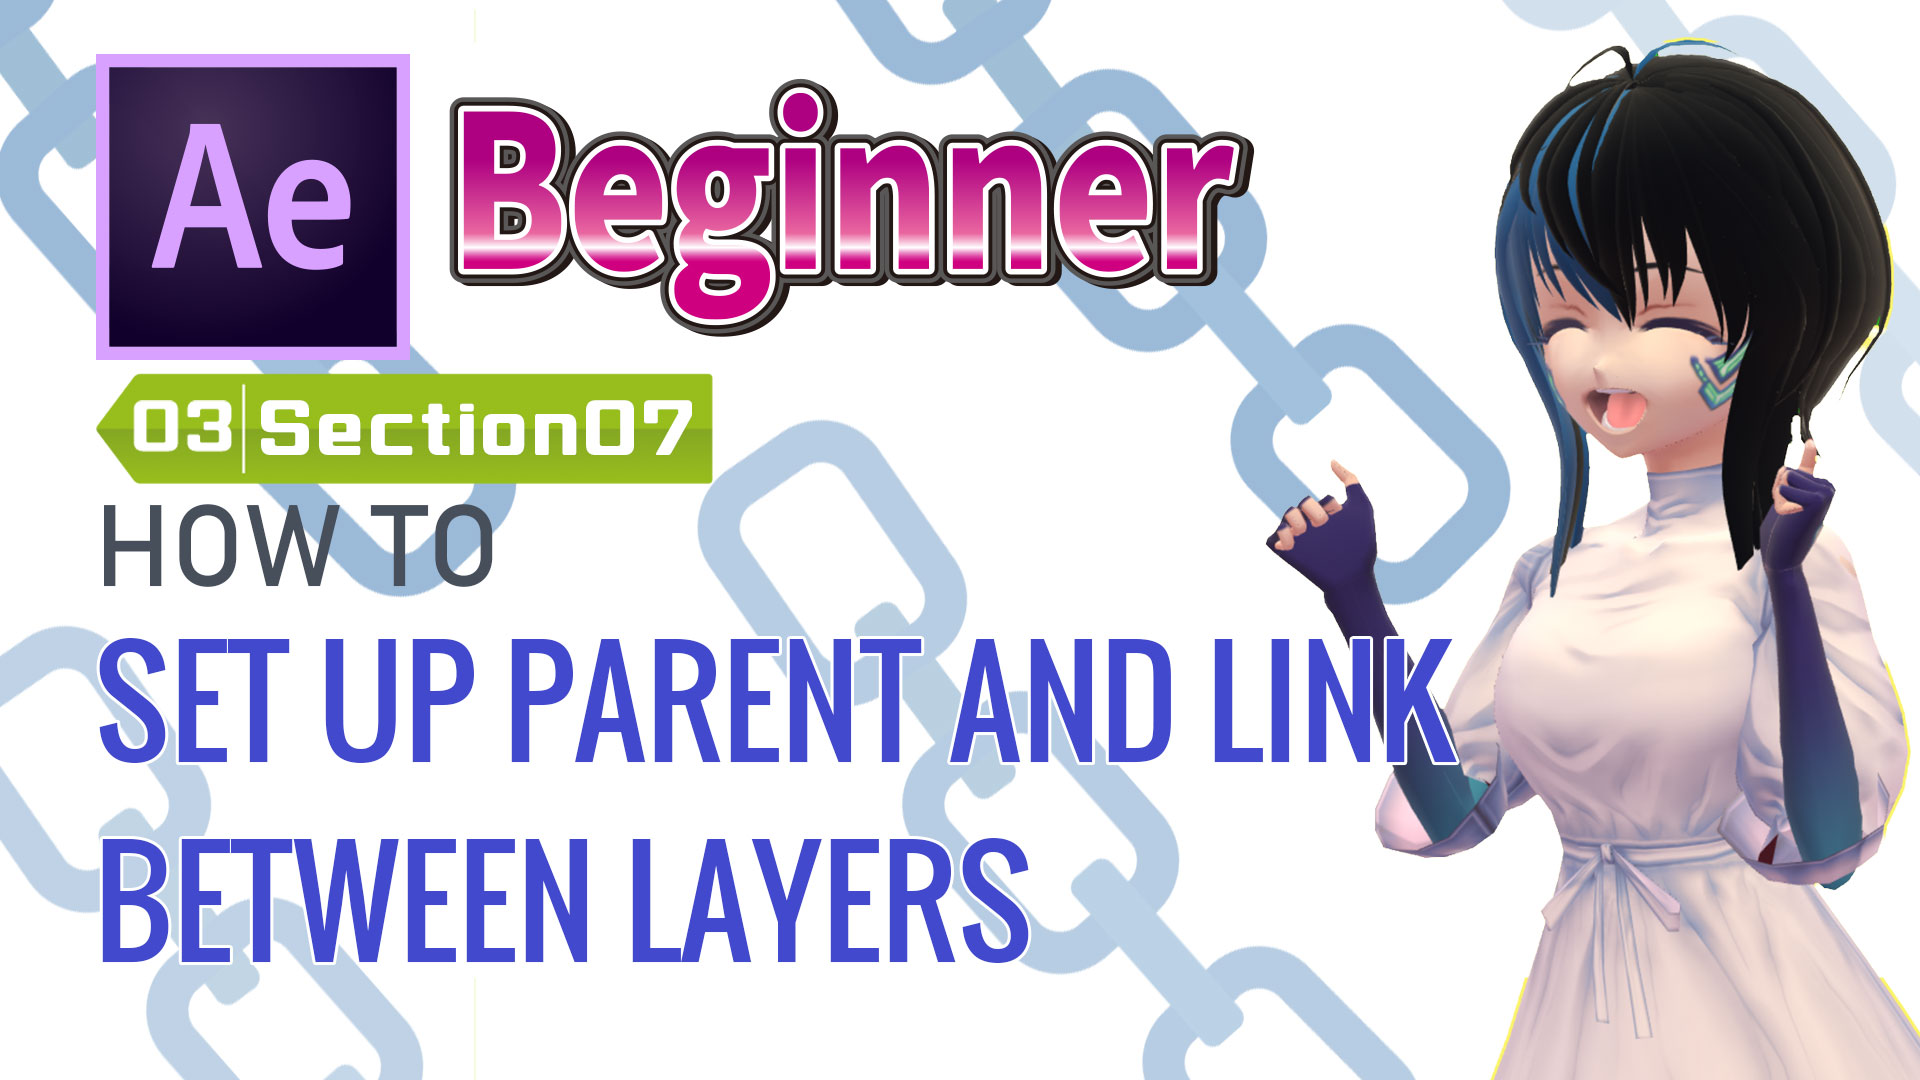 HOW TO SET UP PARENT AND LINK BETWEEN LAYERS